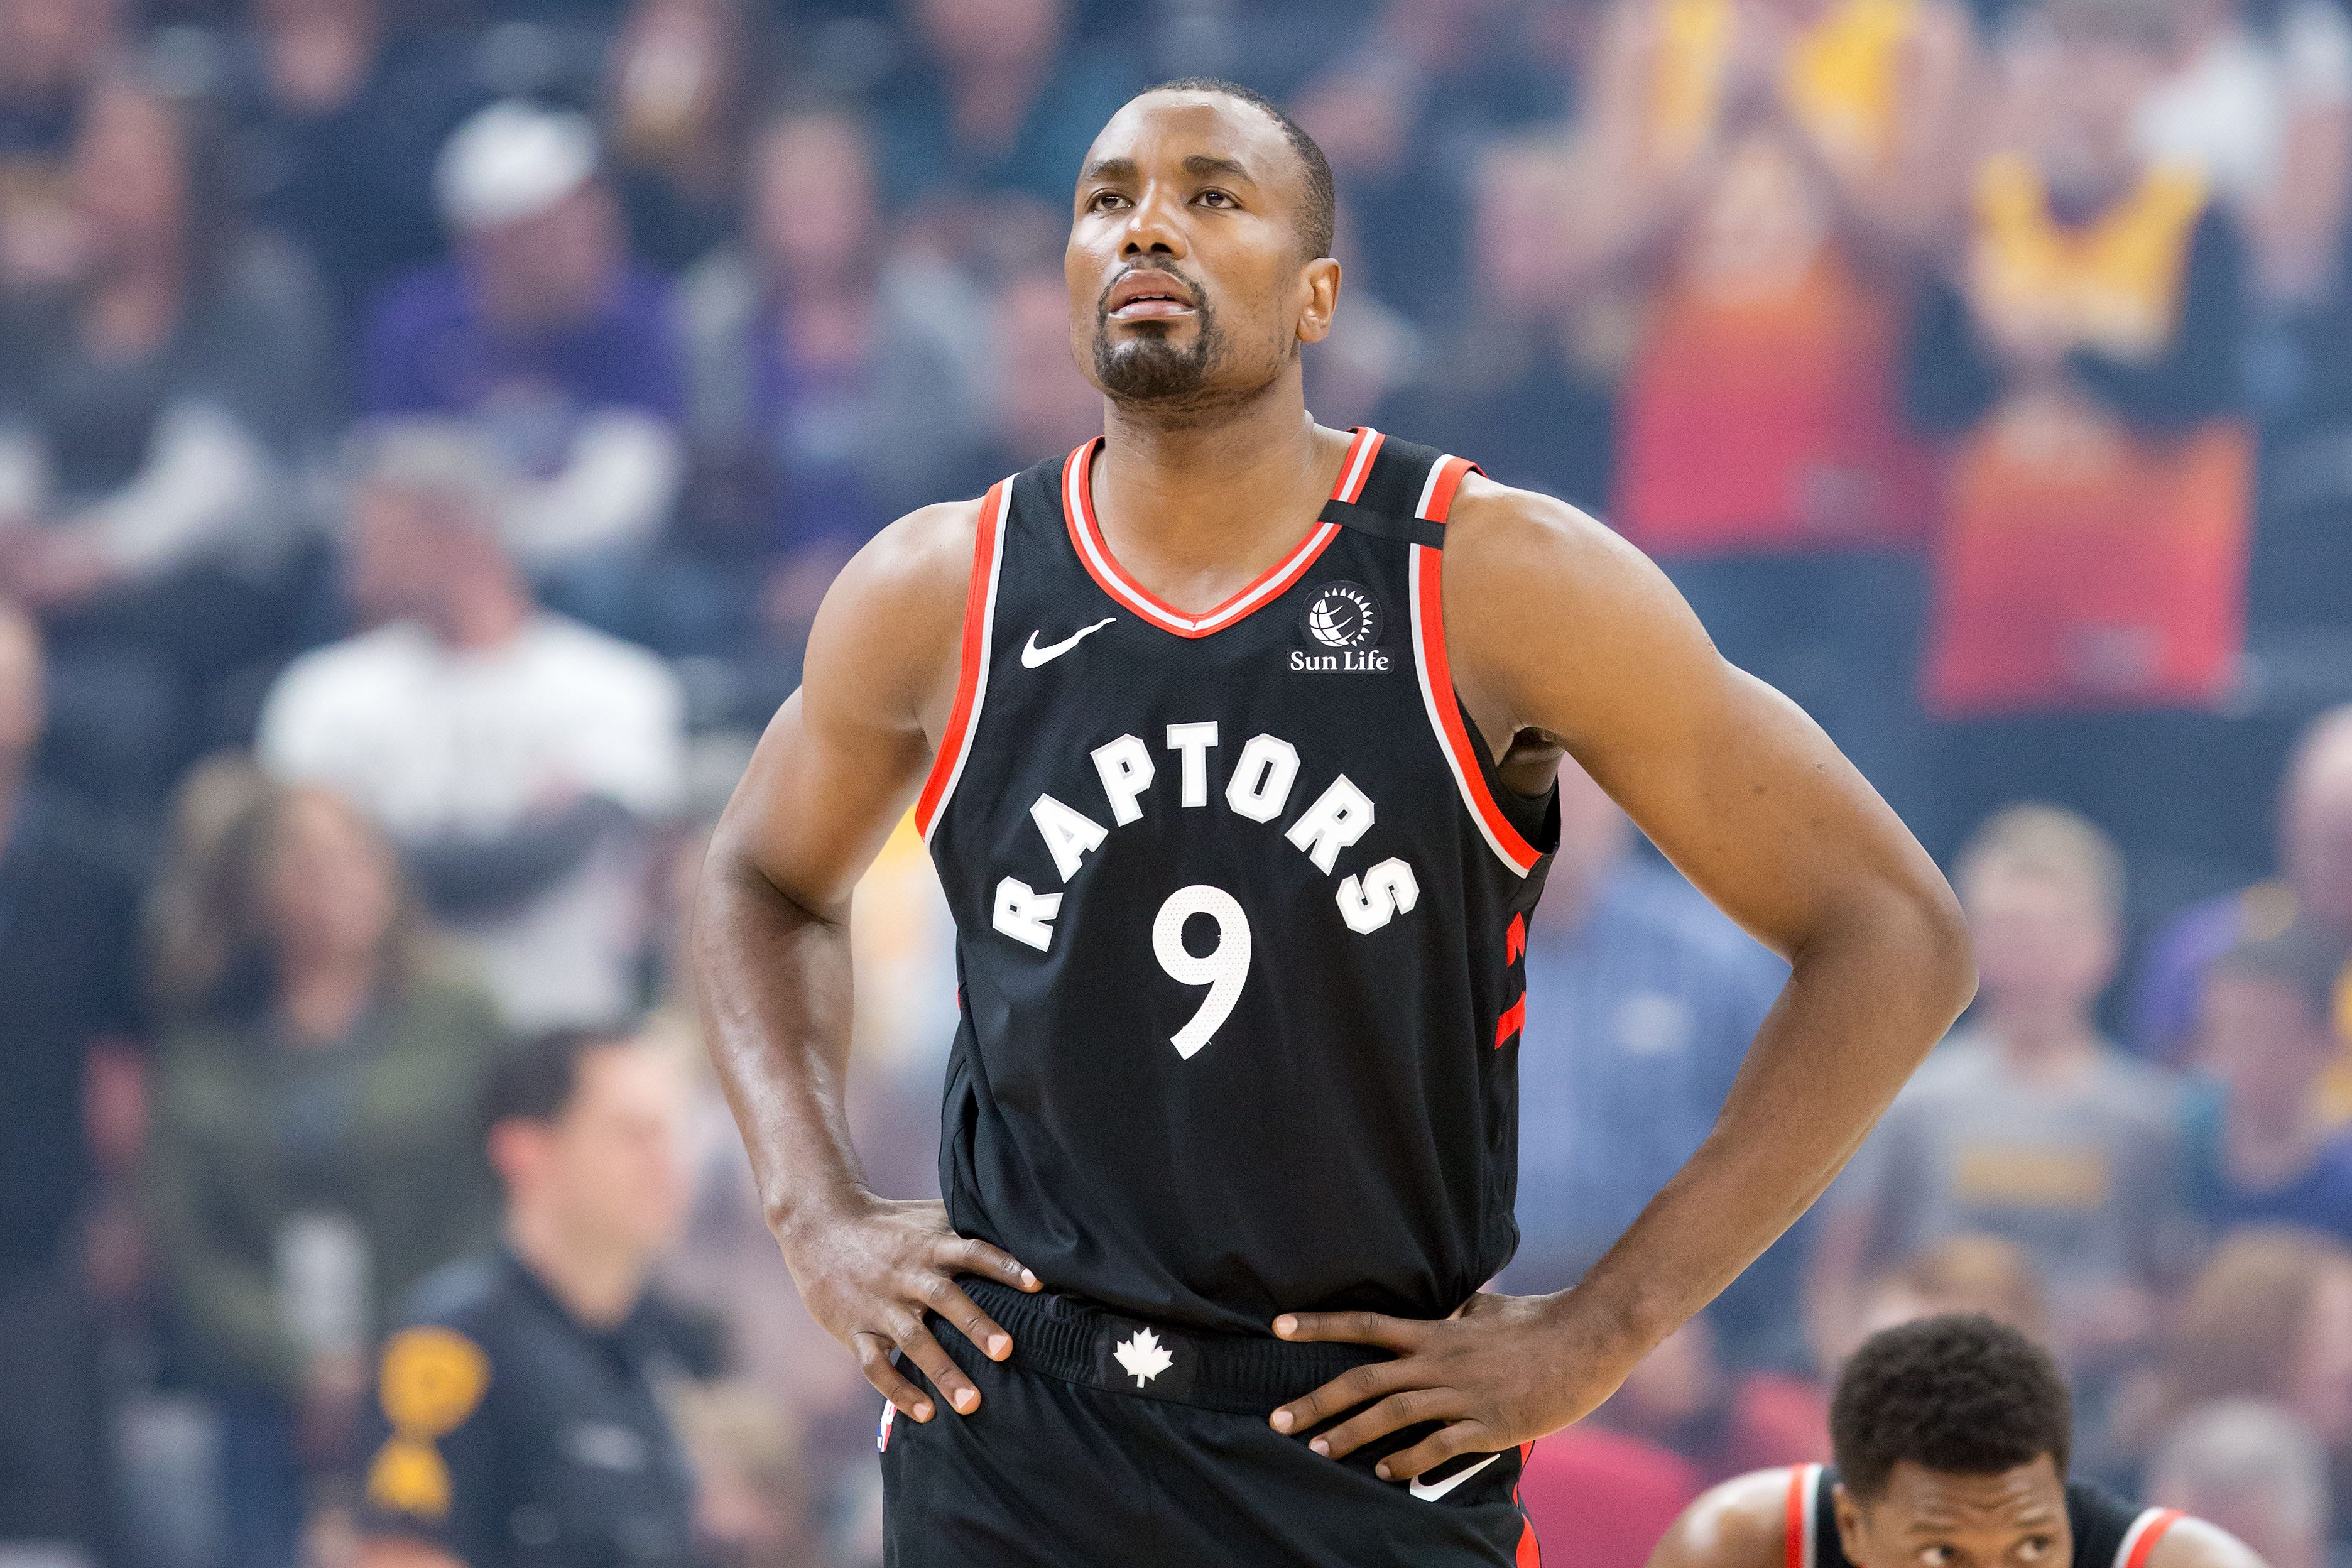 2020 NBA free agent tracker: Day 2 concludes with Serge Ibaka agreeing with Clippers